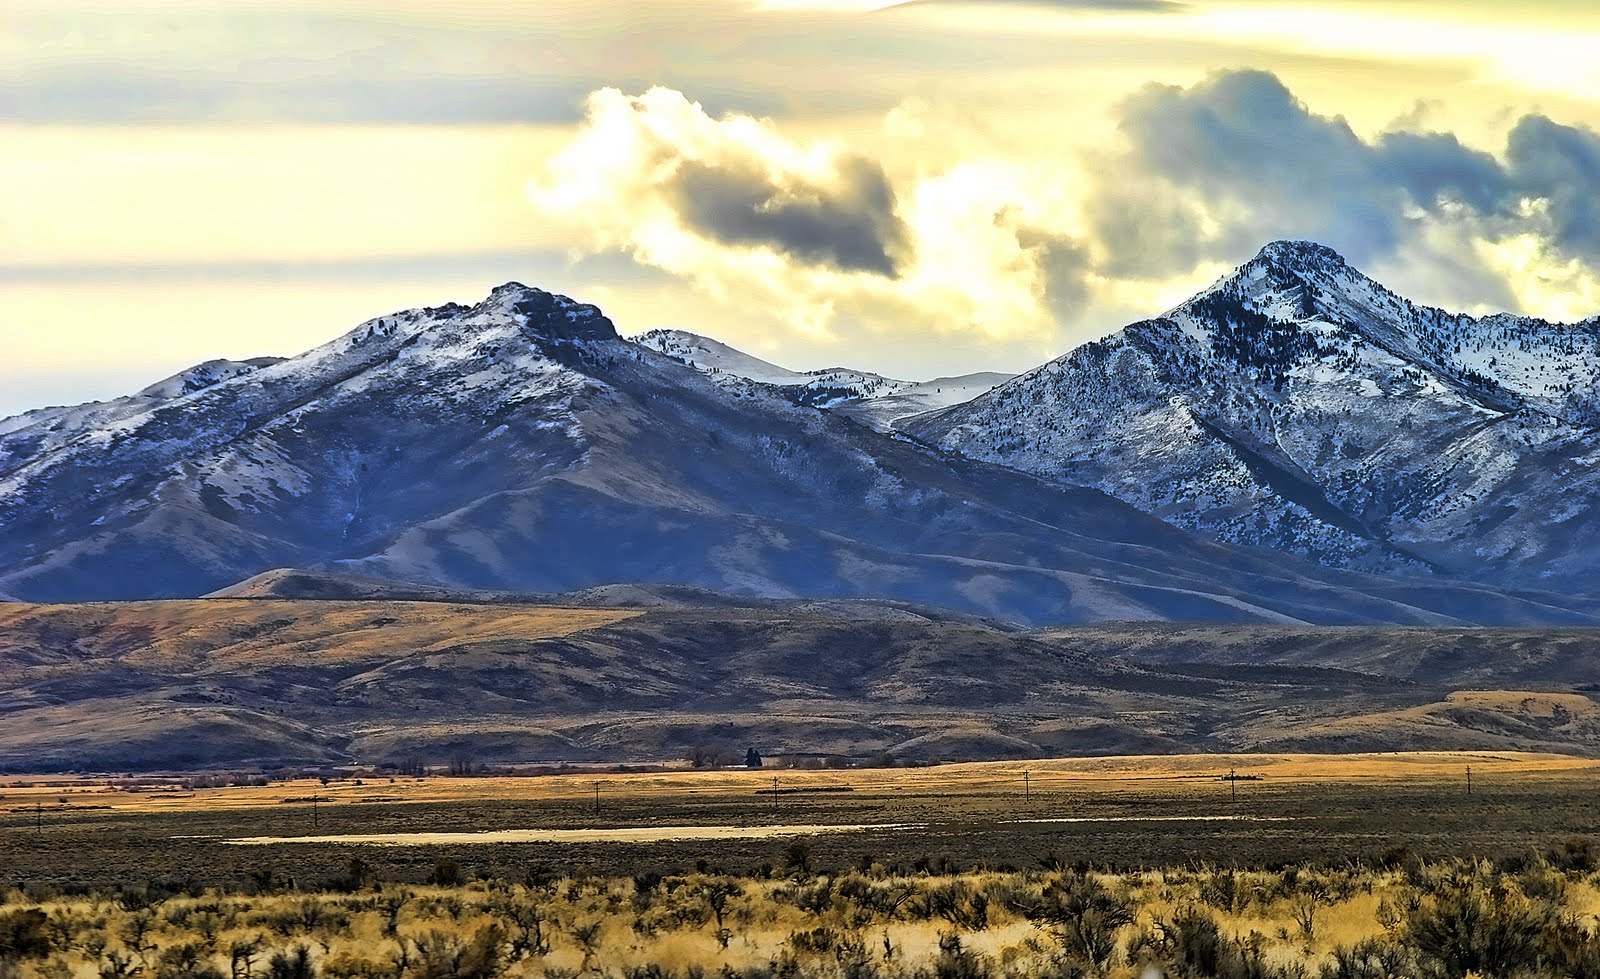 Chuck Kuhn's USA in Photos: Wyoming Landscape (11)